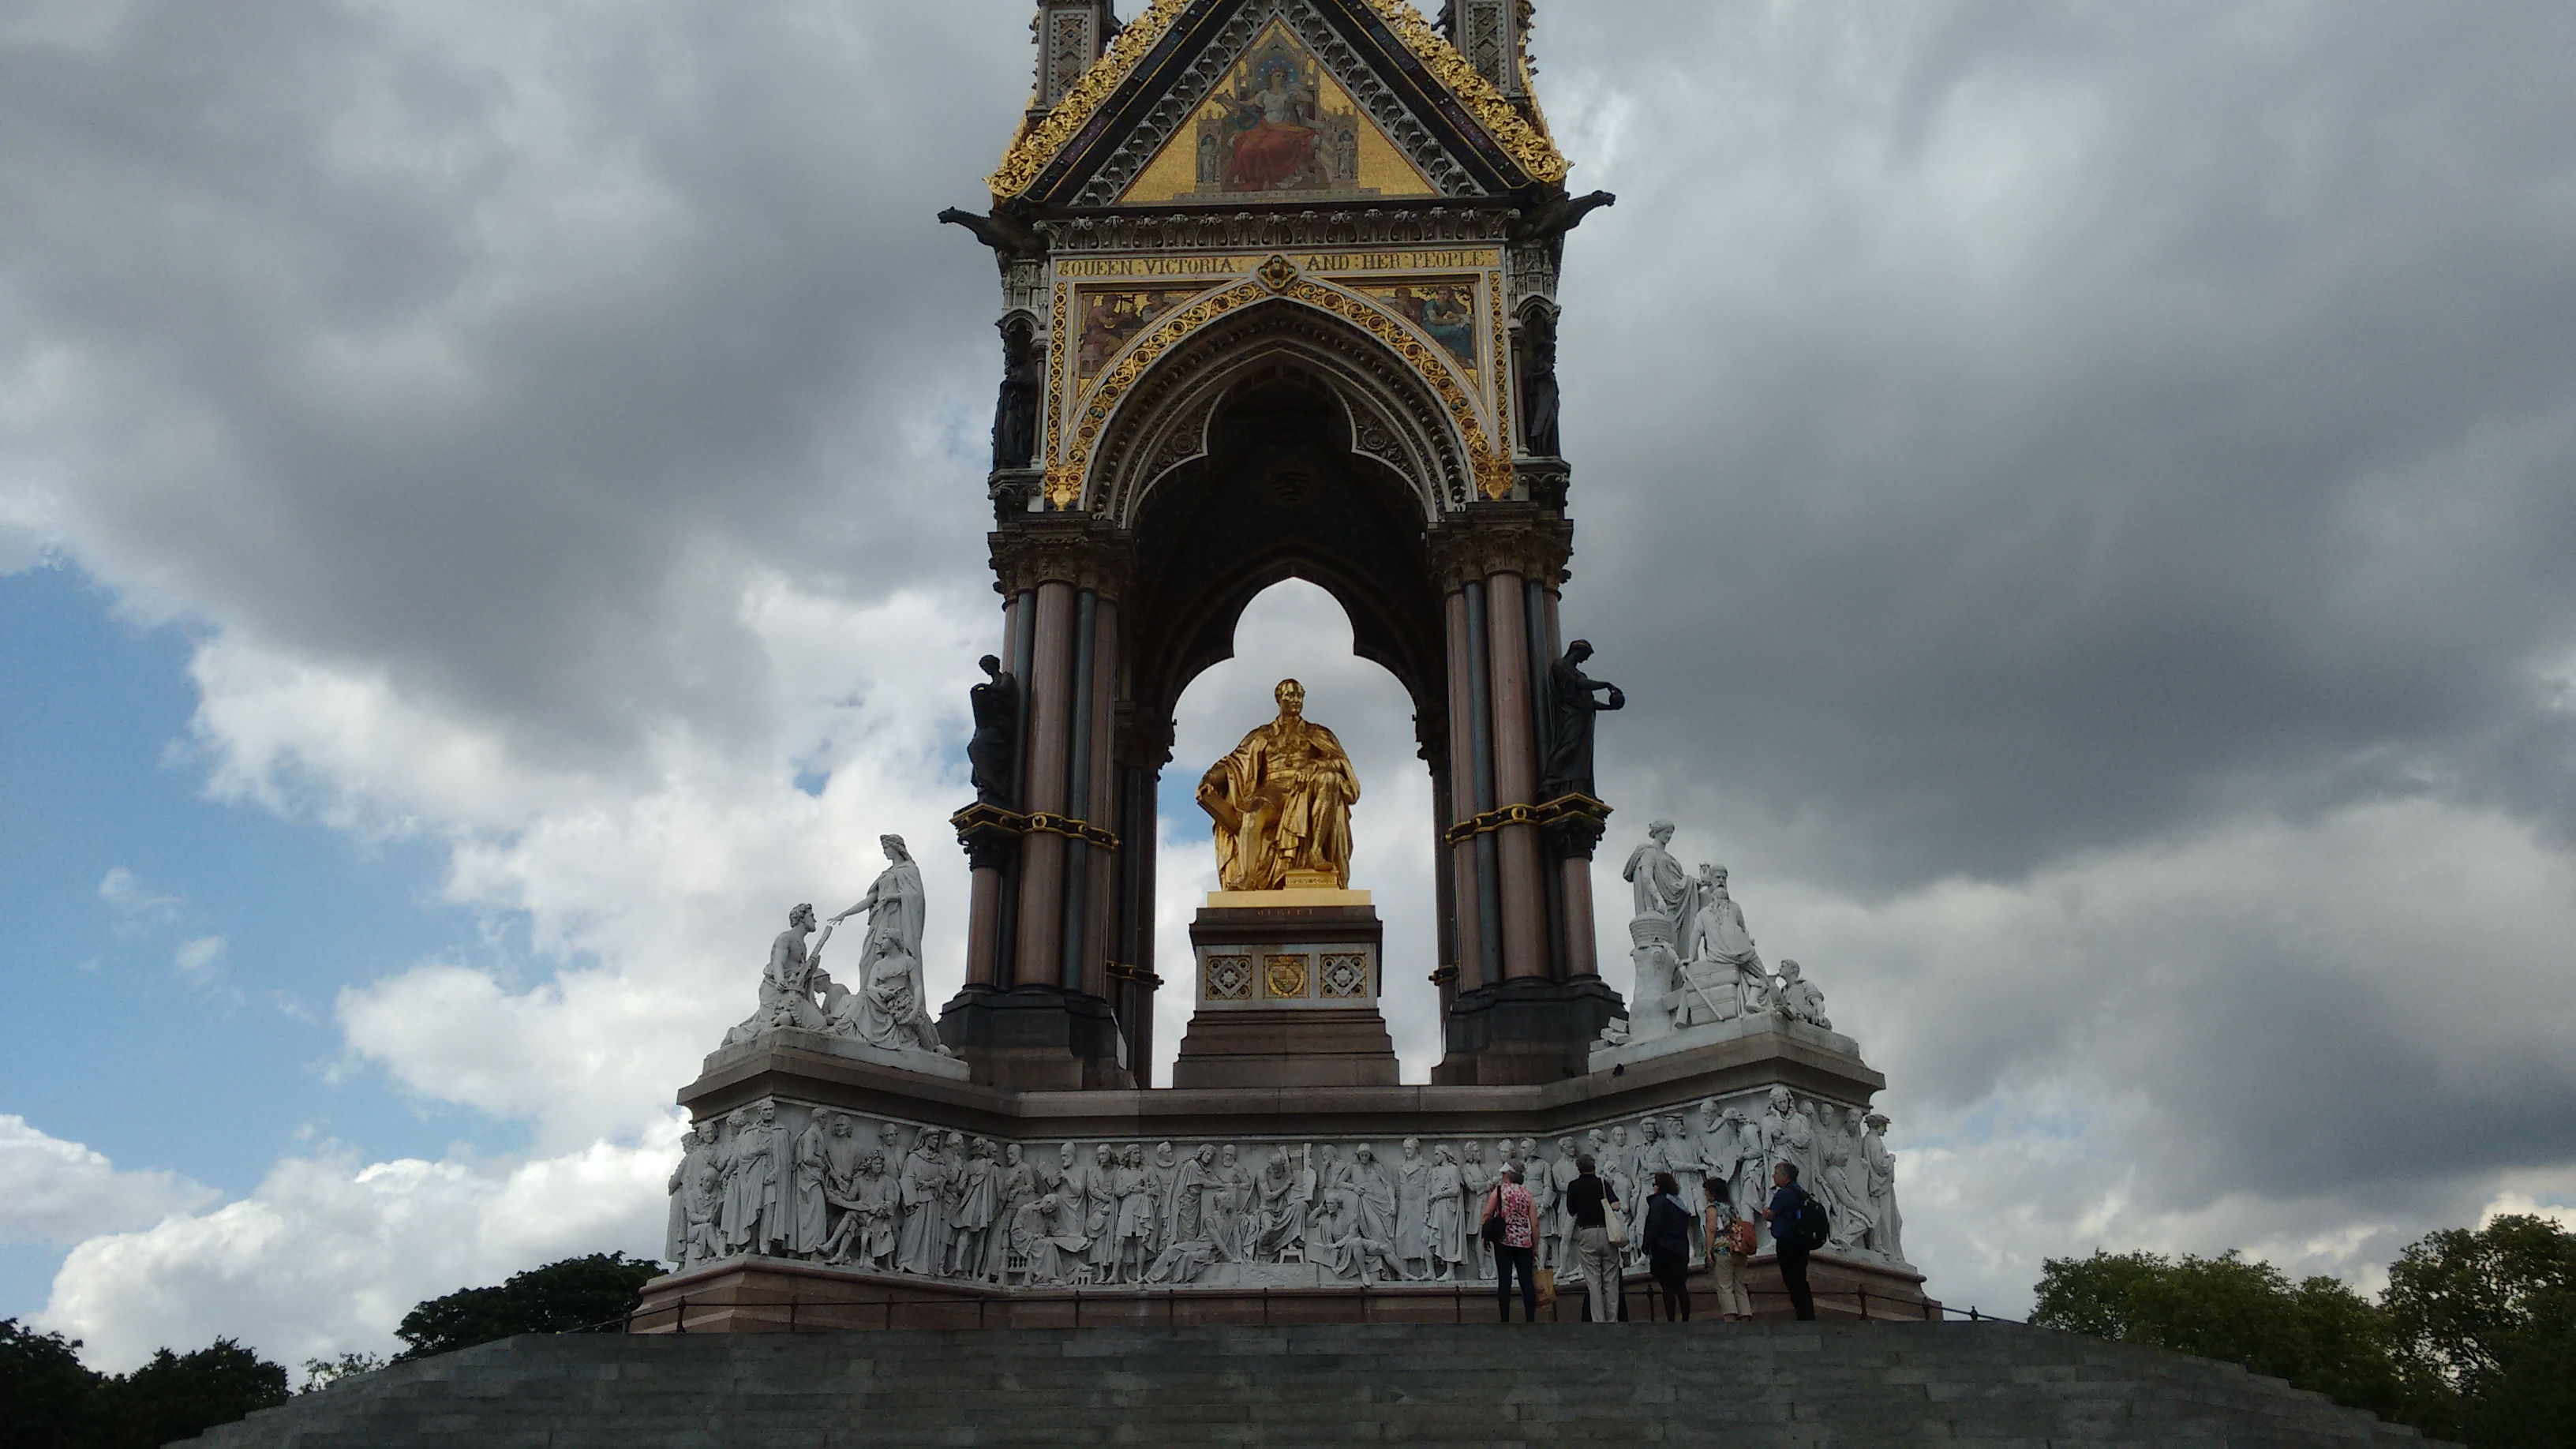 Prince Albert Memorial, Hyde Park, London. Source: S. Kheraj